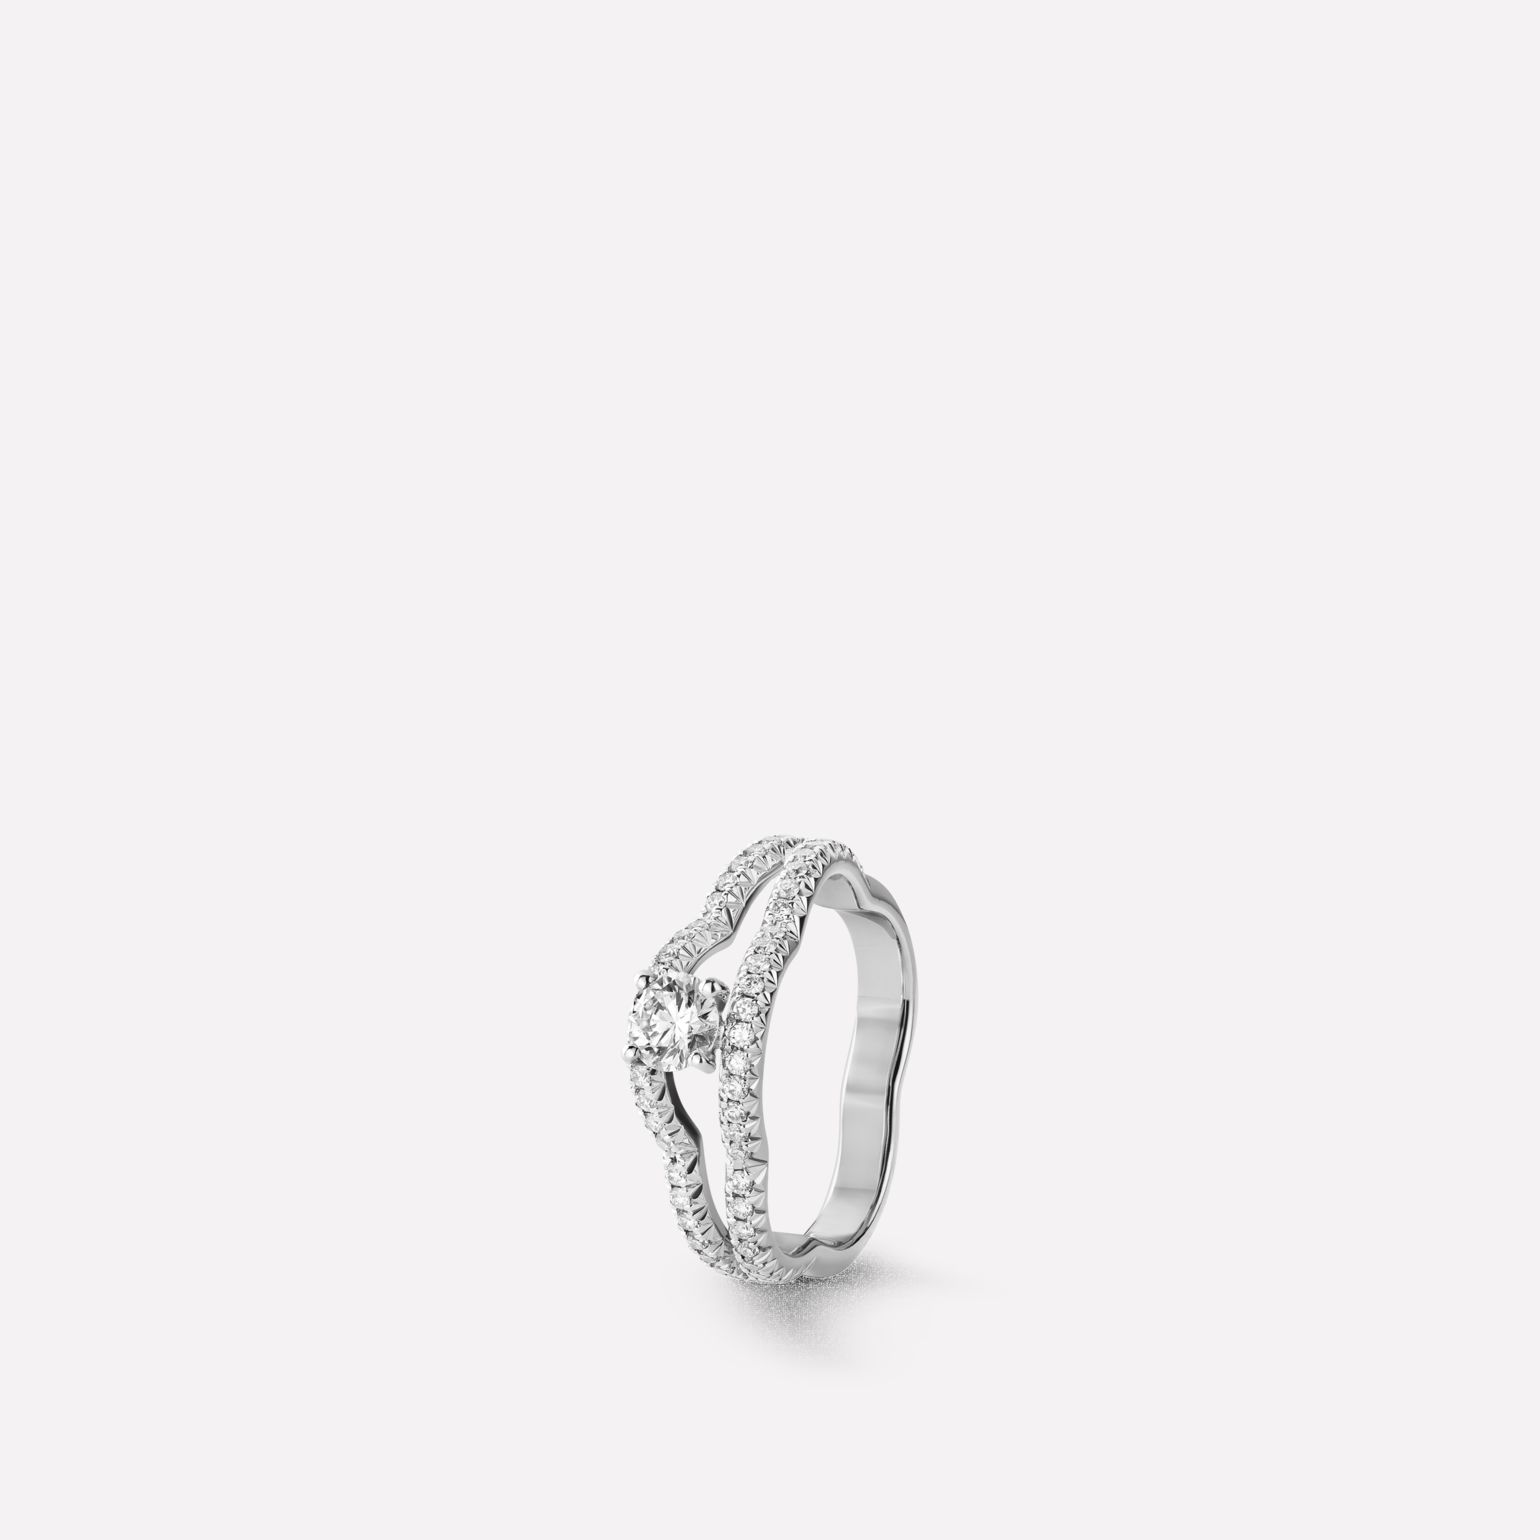 Camélia ring Camélia ring in 18K white gold and diamonds with one center diamond